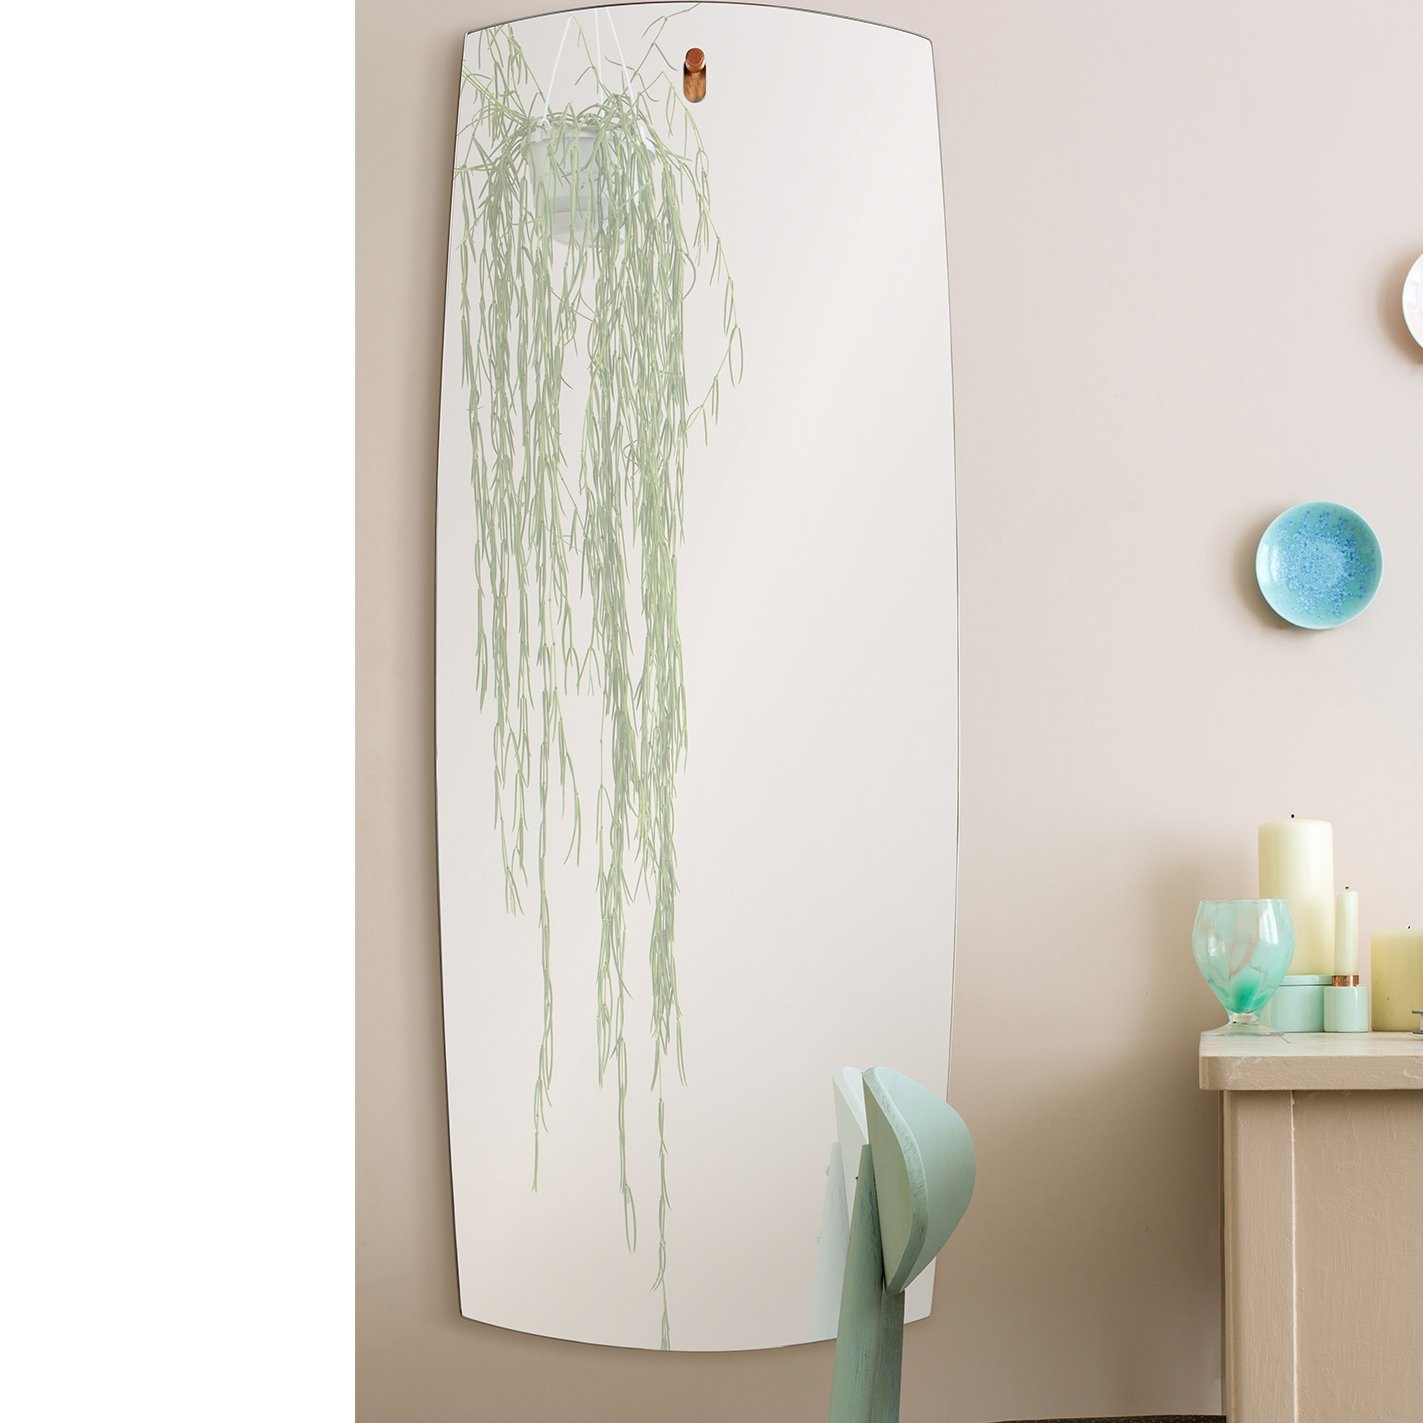 Neve Unframed Rectangular Full Length Wall Mirror Allmodern Intended For Unframed Wall Mirror (Image 10 of 15)